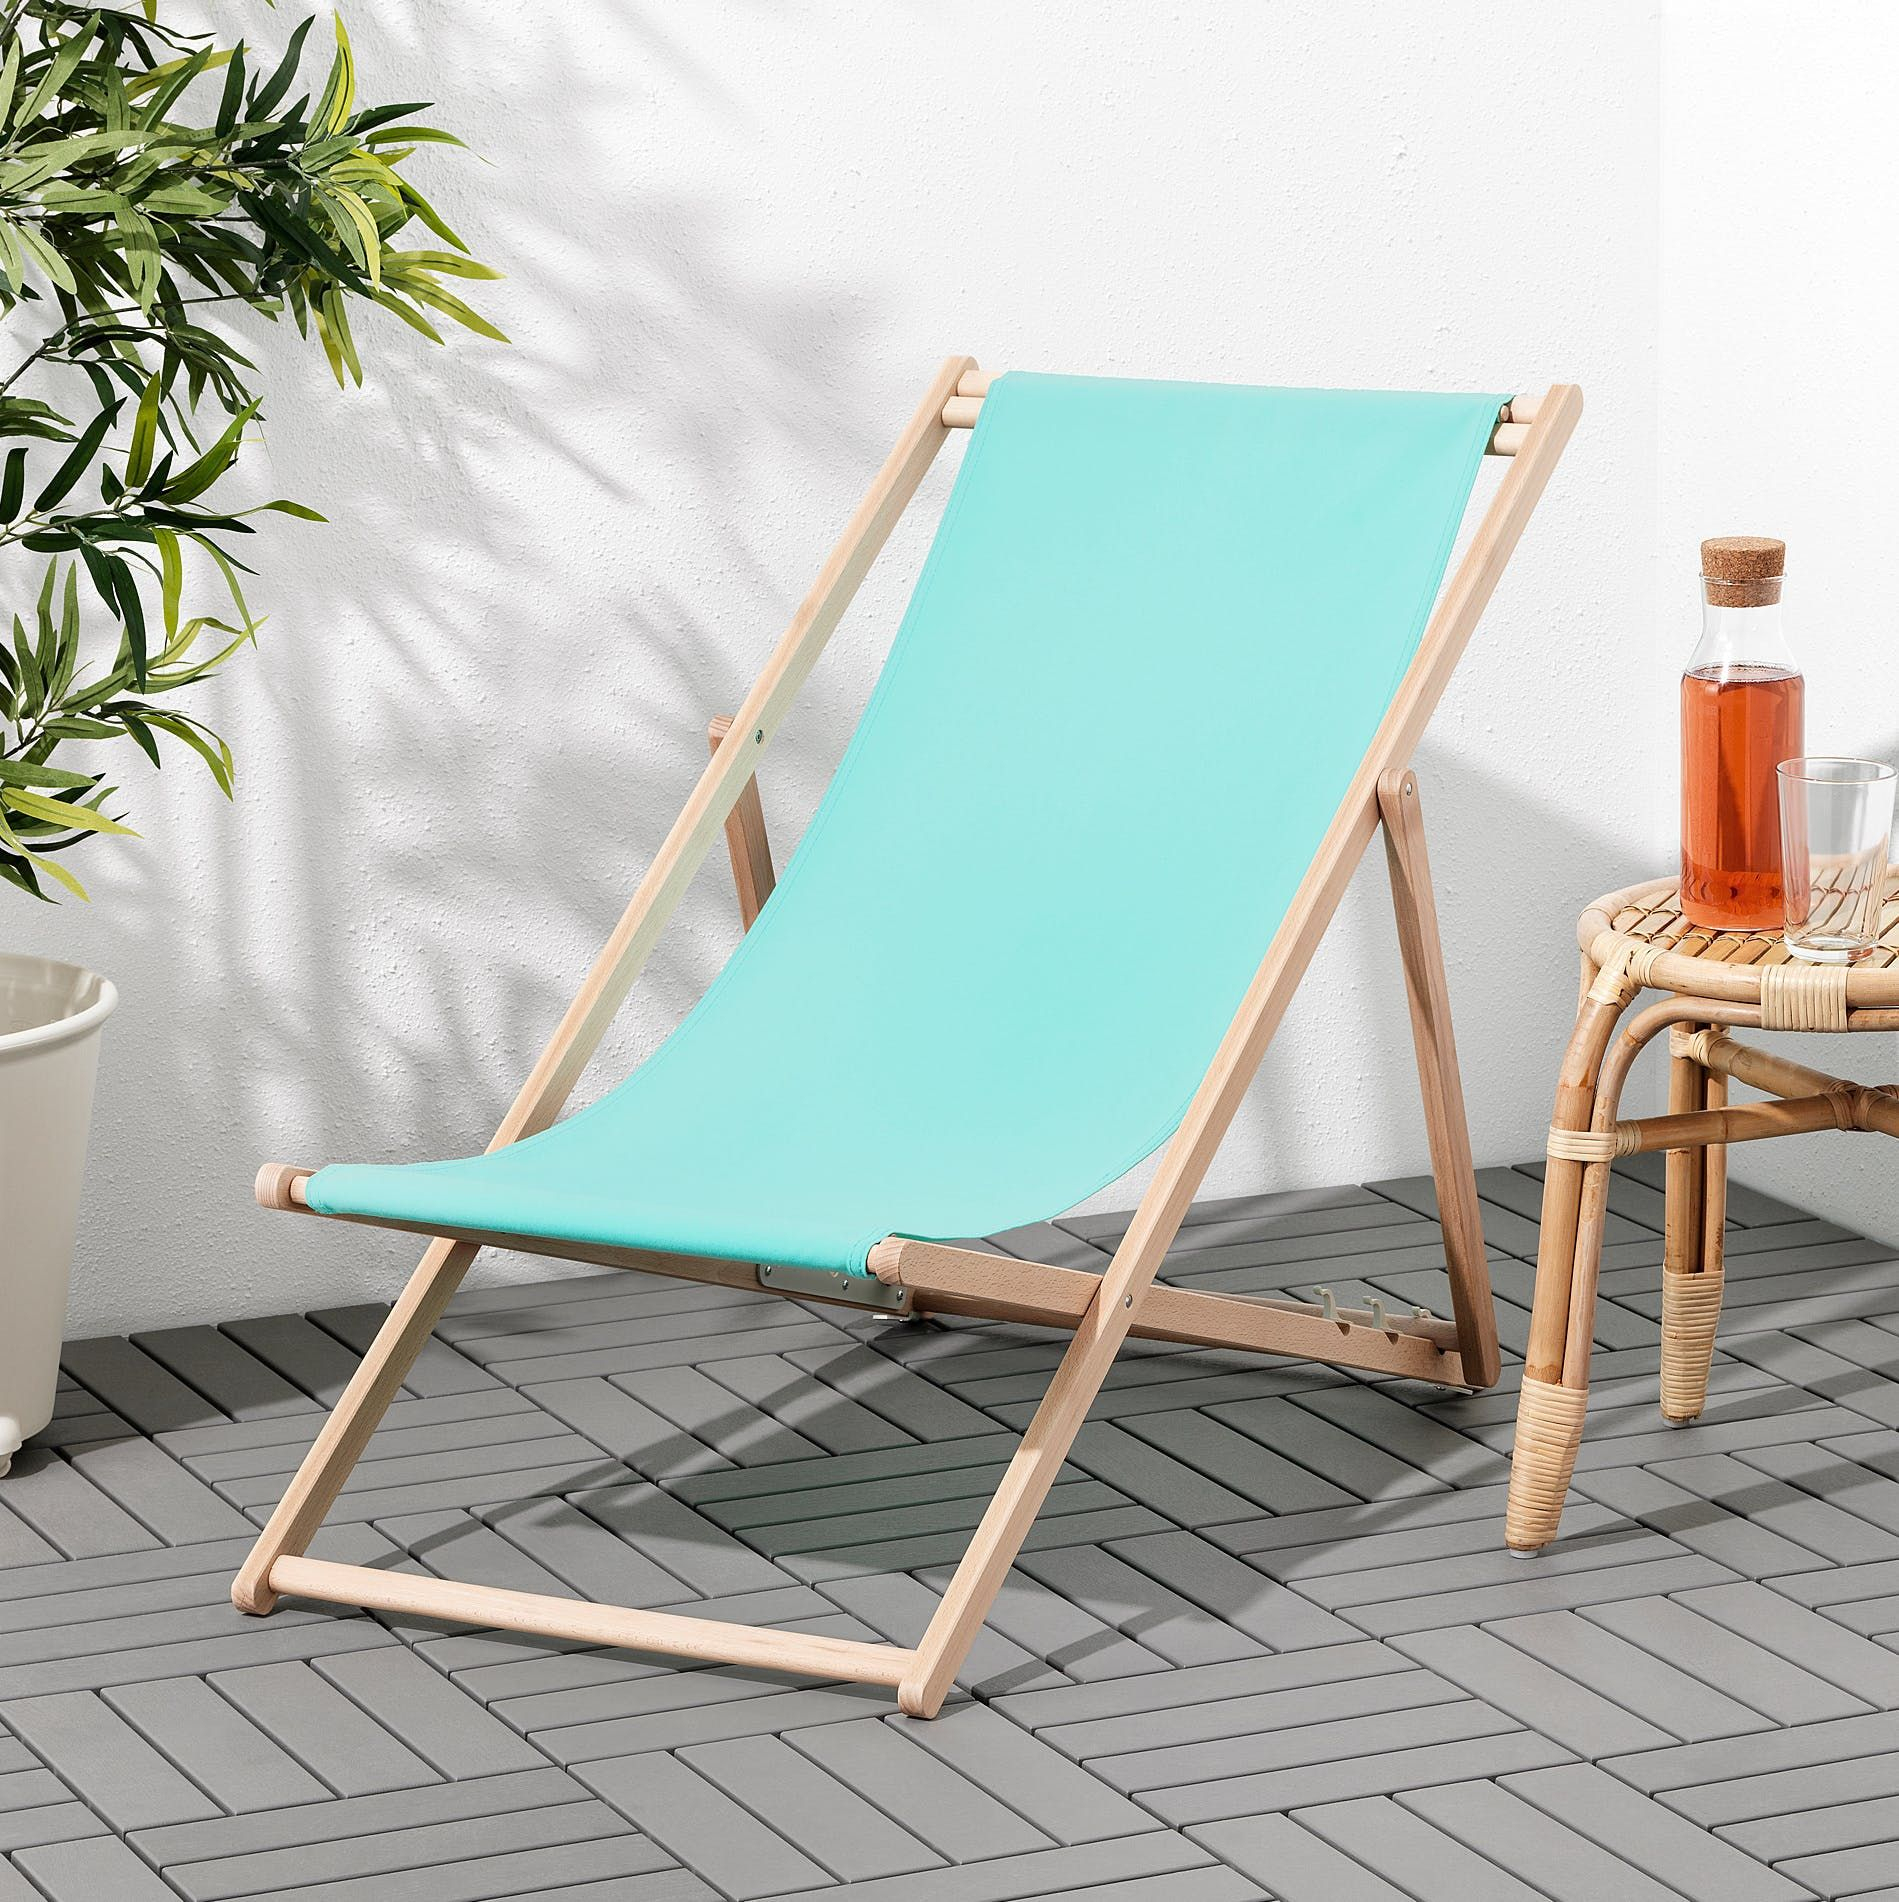 The Cutest Ikea Patio Items Under $100 You Need For Summer ... tout Transat Ikea